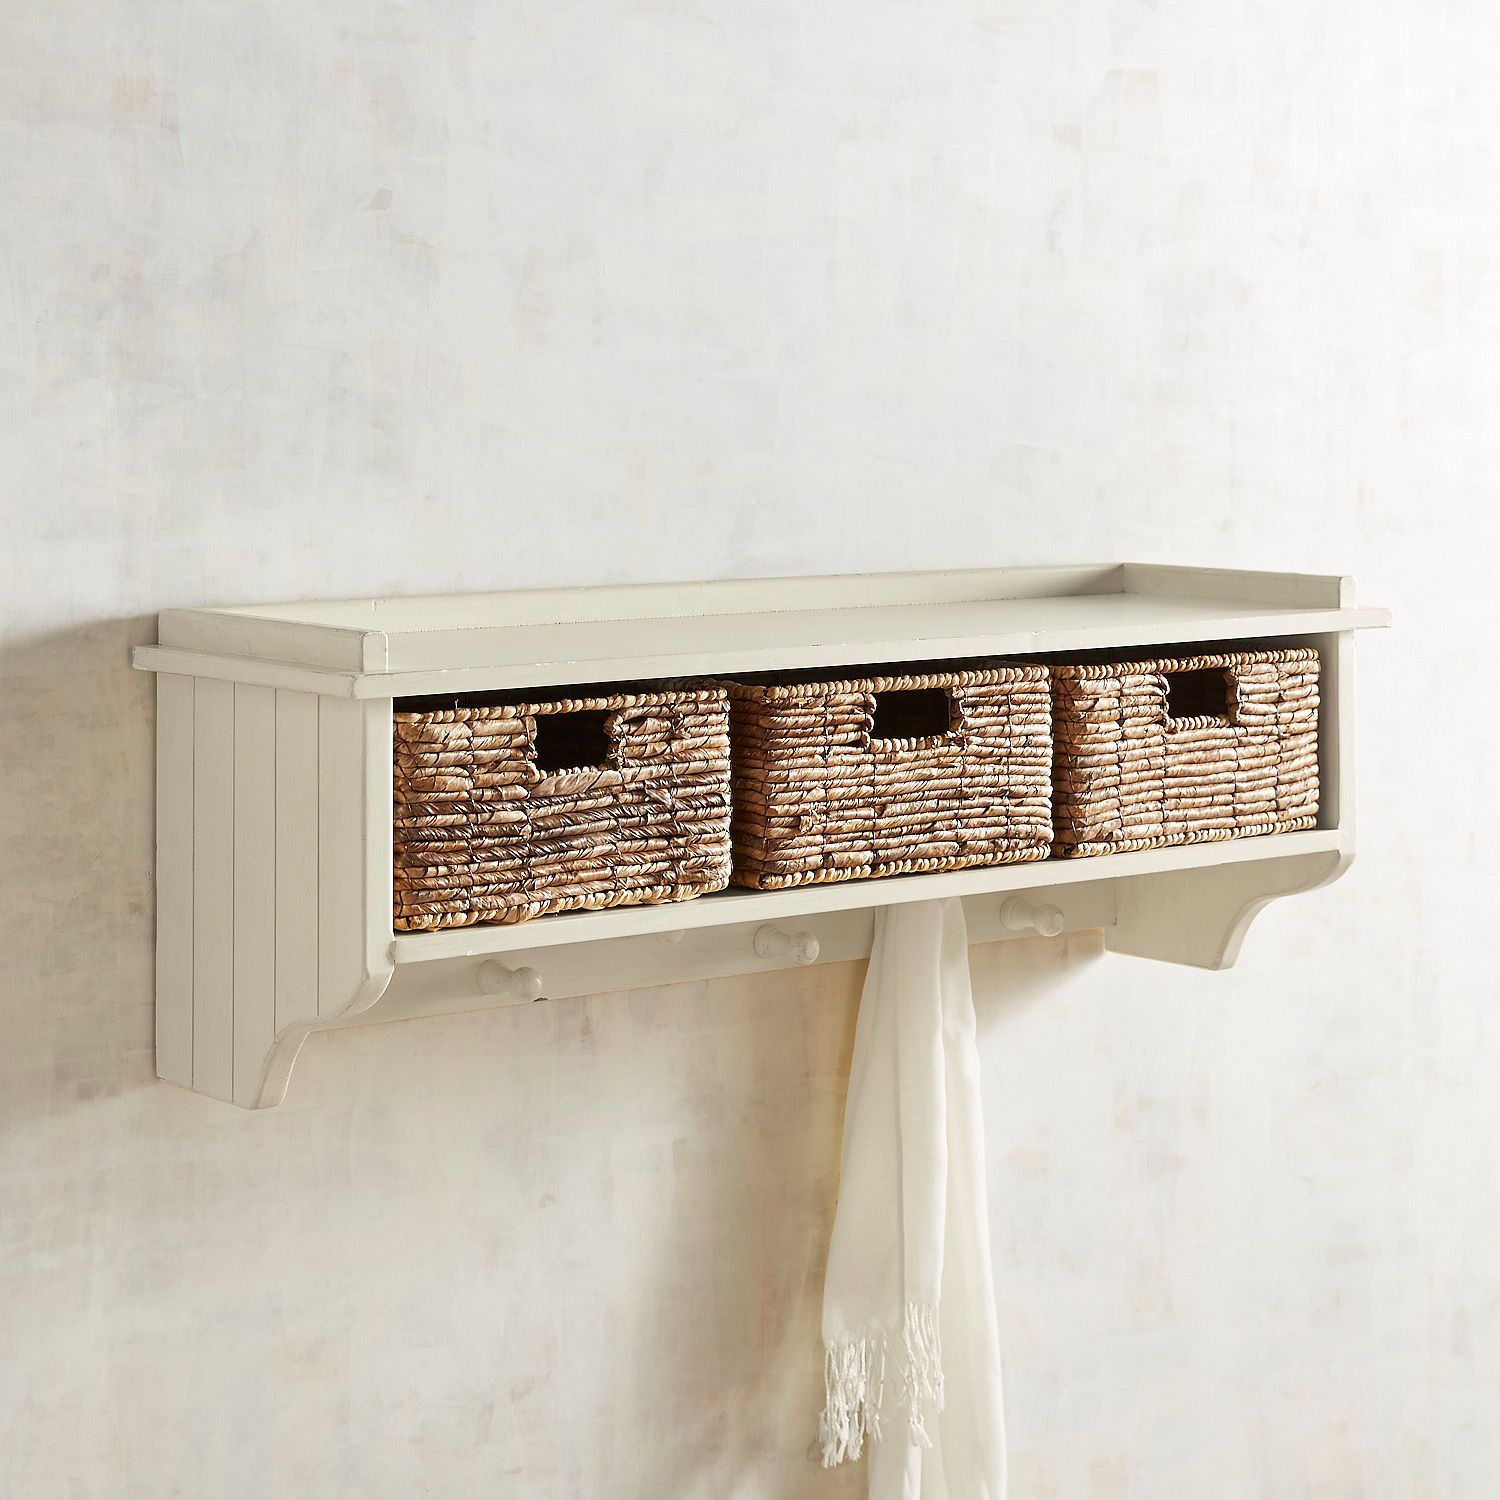 Holtom Antique White Wall Shelf With Baskets